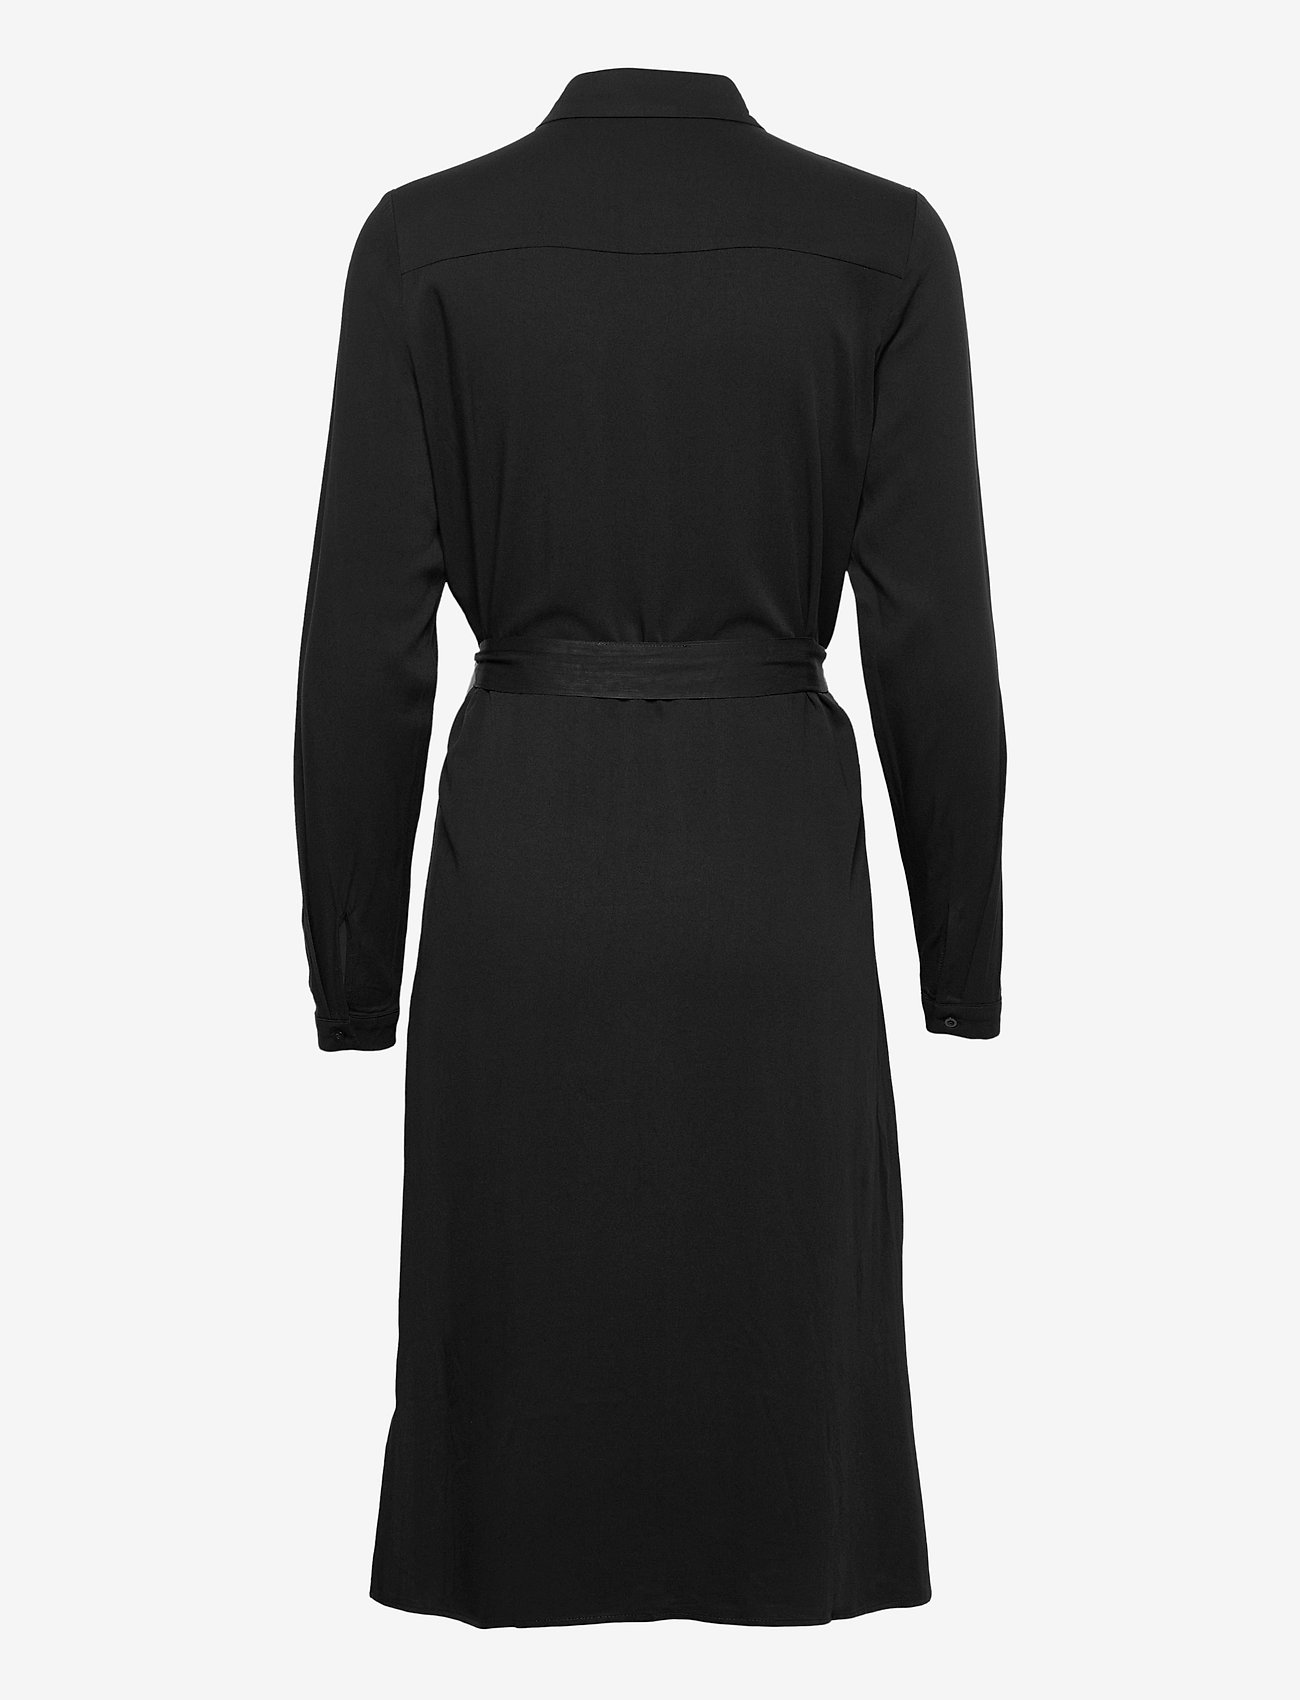 Vila - VIDANIA BELT L/S SHIRT DRESS/SU - - alledaagse jurken - black - 1